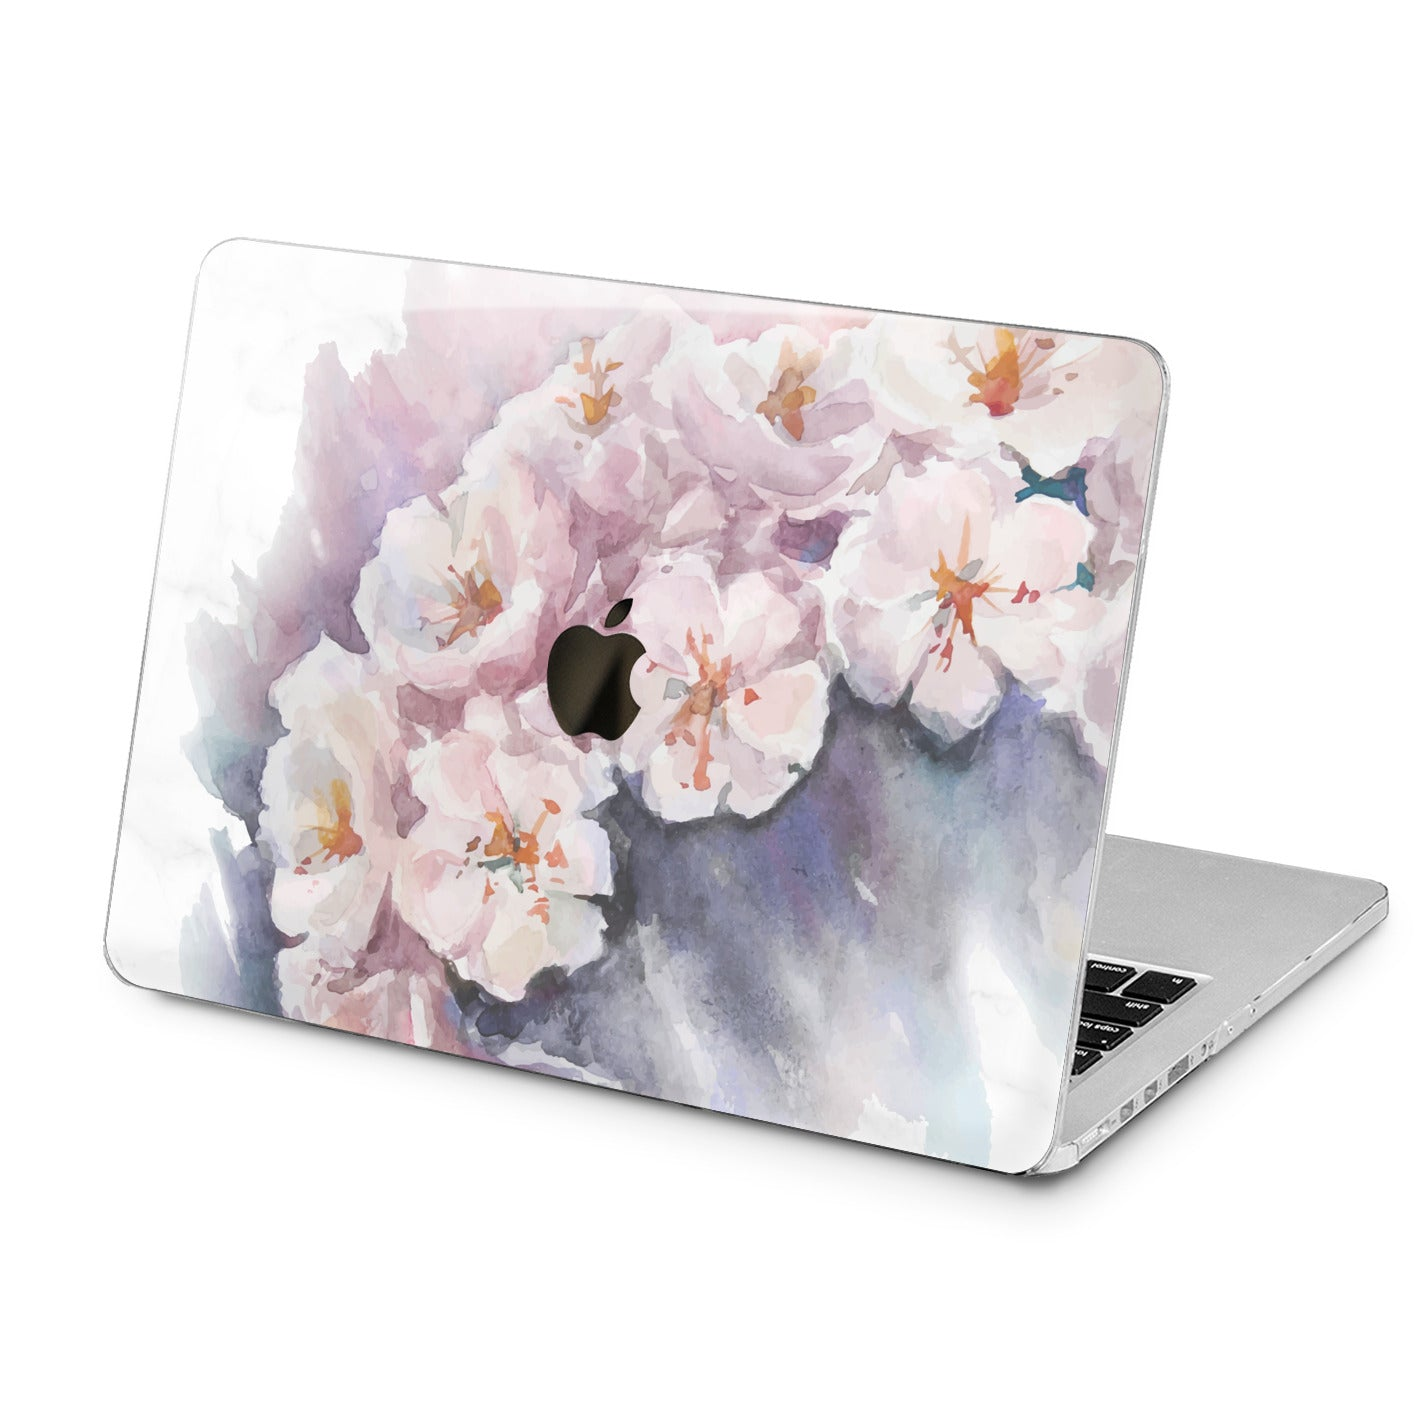 Lex Altern Lex Altern White Jasmine Blossom Case for your Laptop Apple Macbook.